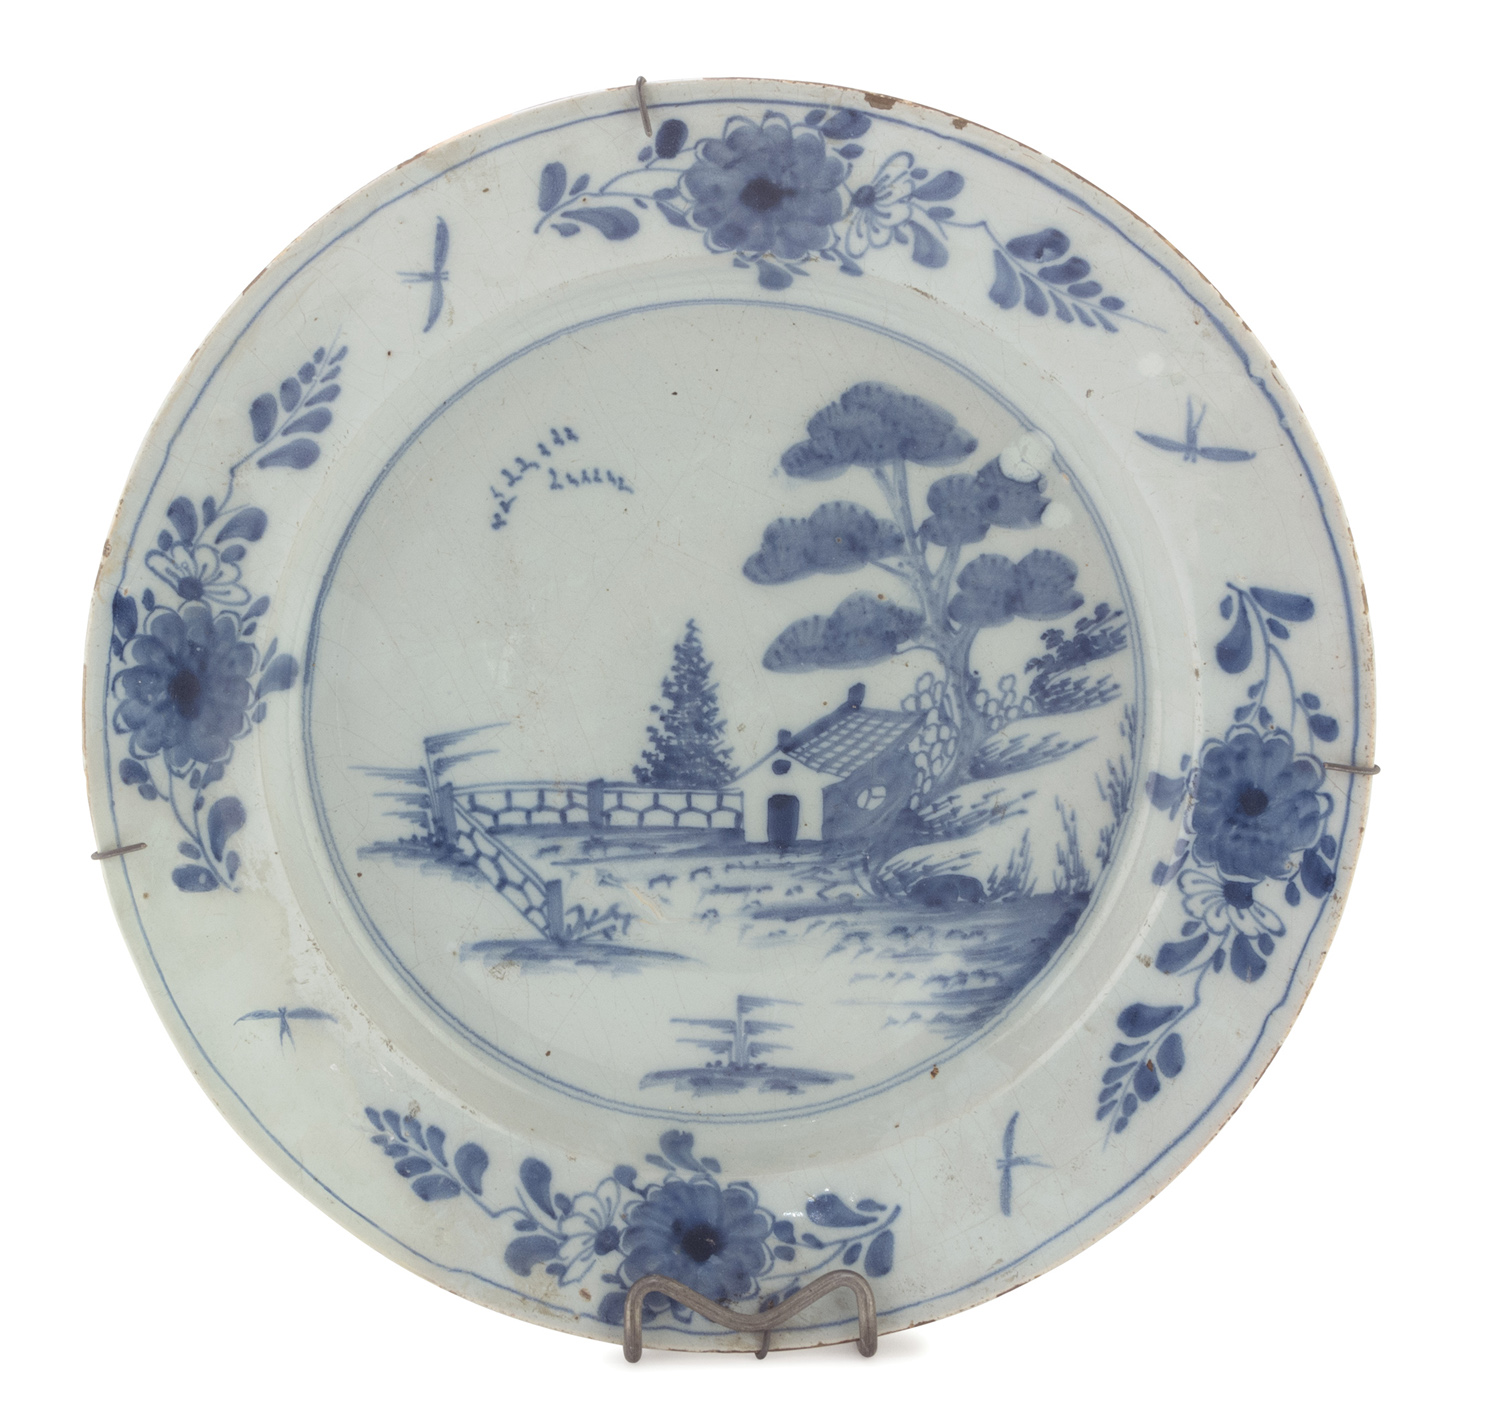 LARGE PORCELAIN PLATE PROBABLY MILAN LATE 18th CENTURY